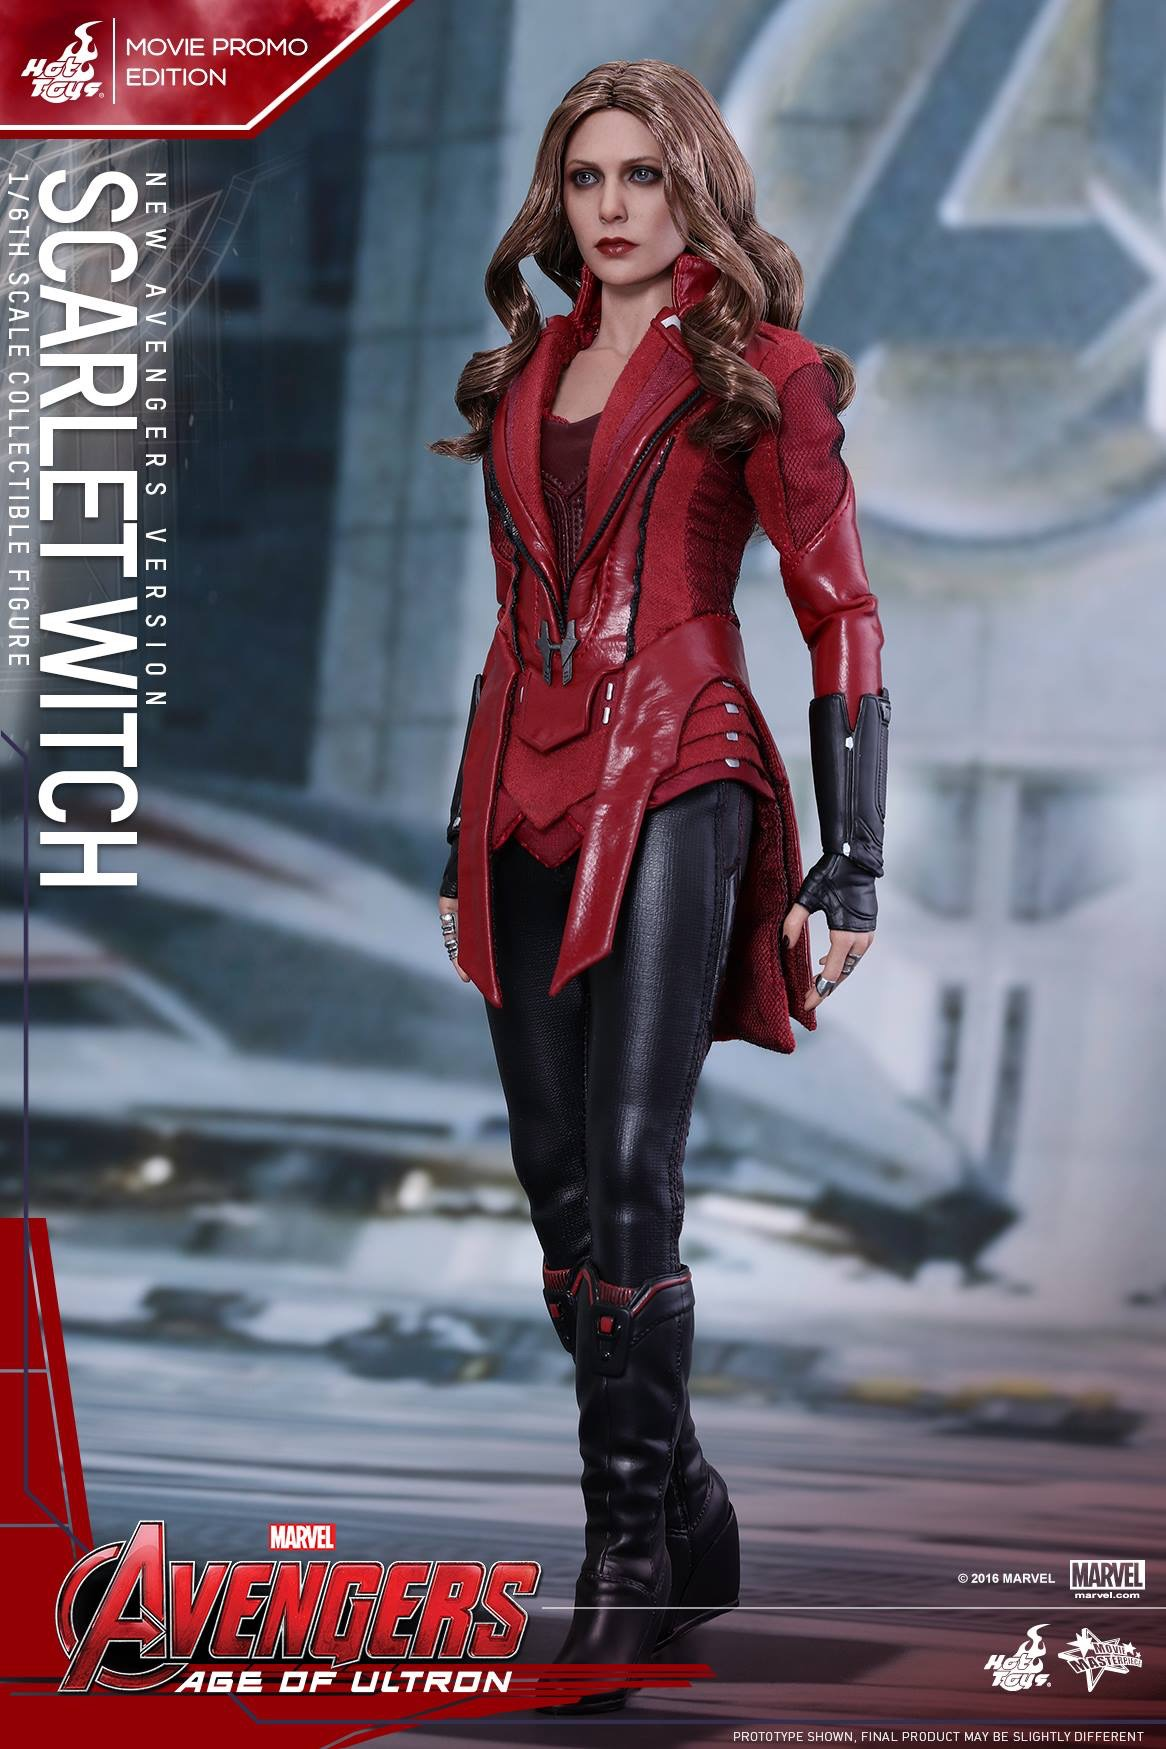 AVENGERS 2 : AGE OF ULTRON - SCARLET WITCH (MM$357) 160415024941985204